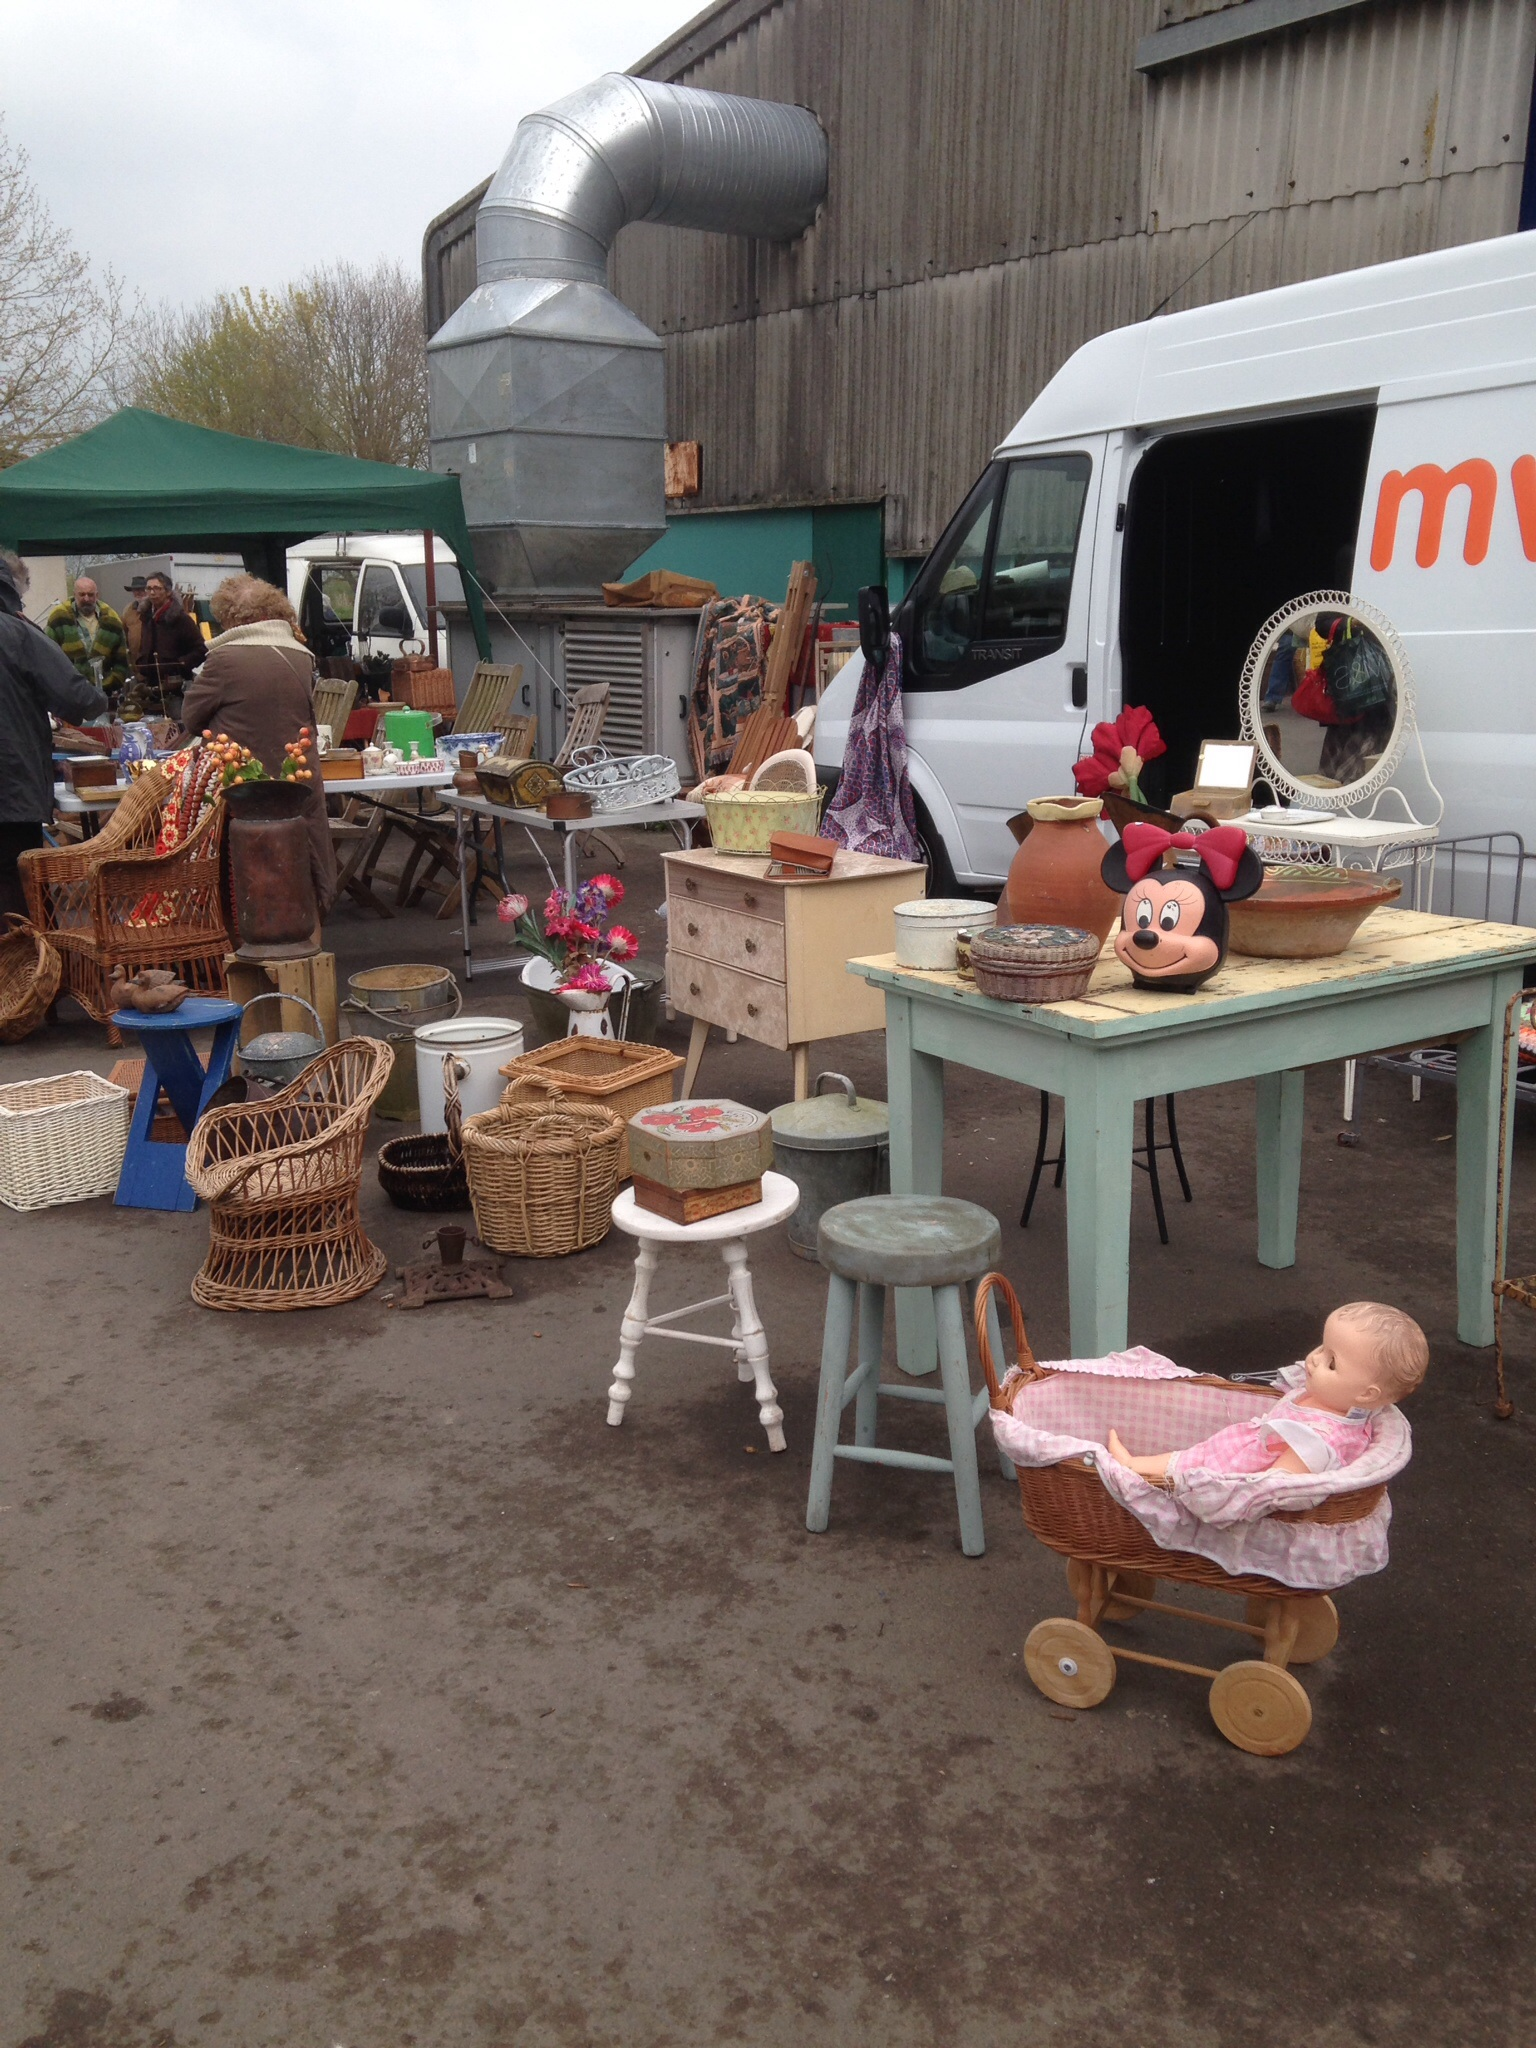 Shepton Mallet Flea Market - outside